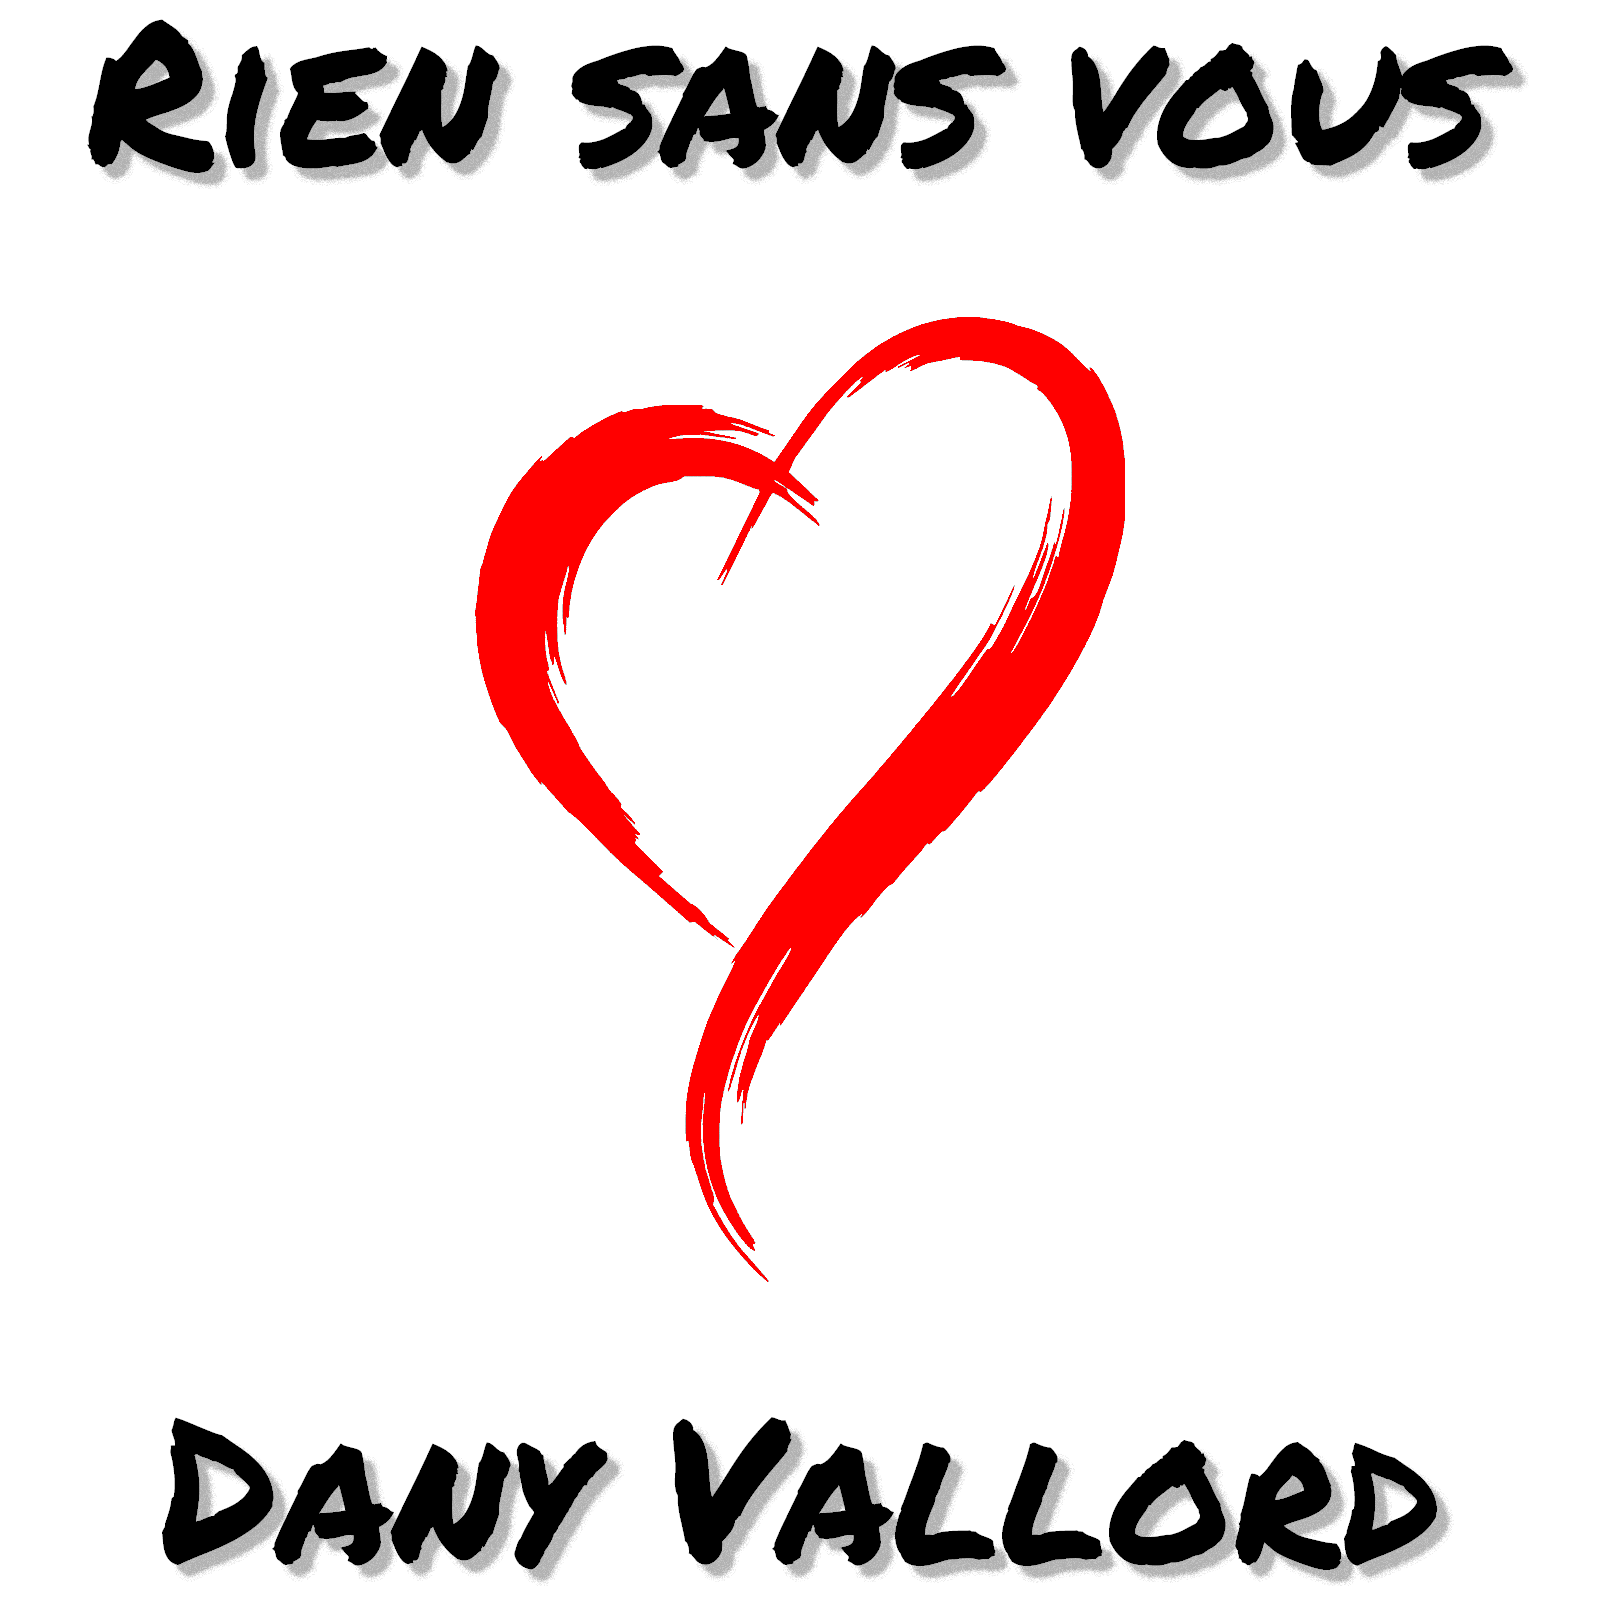 Dany Vallord - Album EP 6 titres